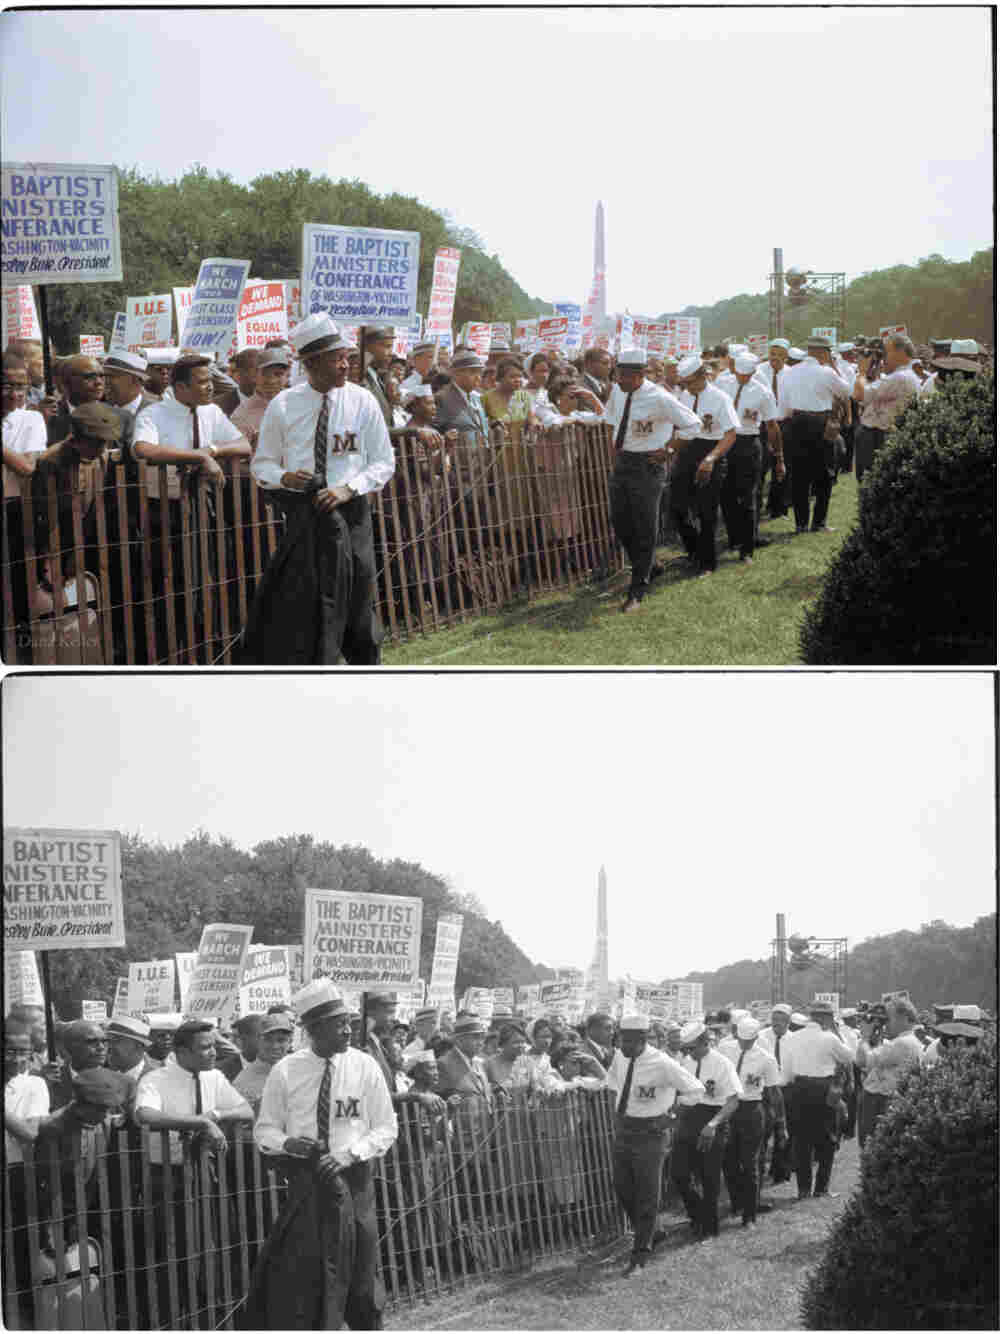 Marshals watch the crowd during the march. Colorized by Dana Keller.